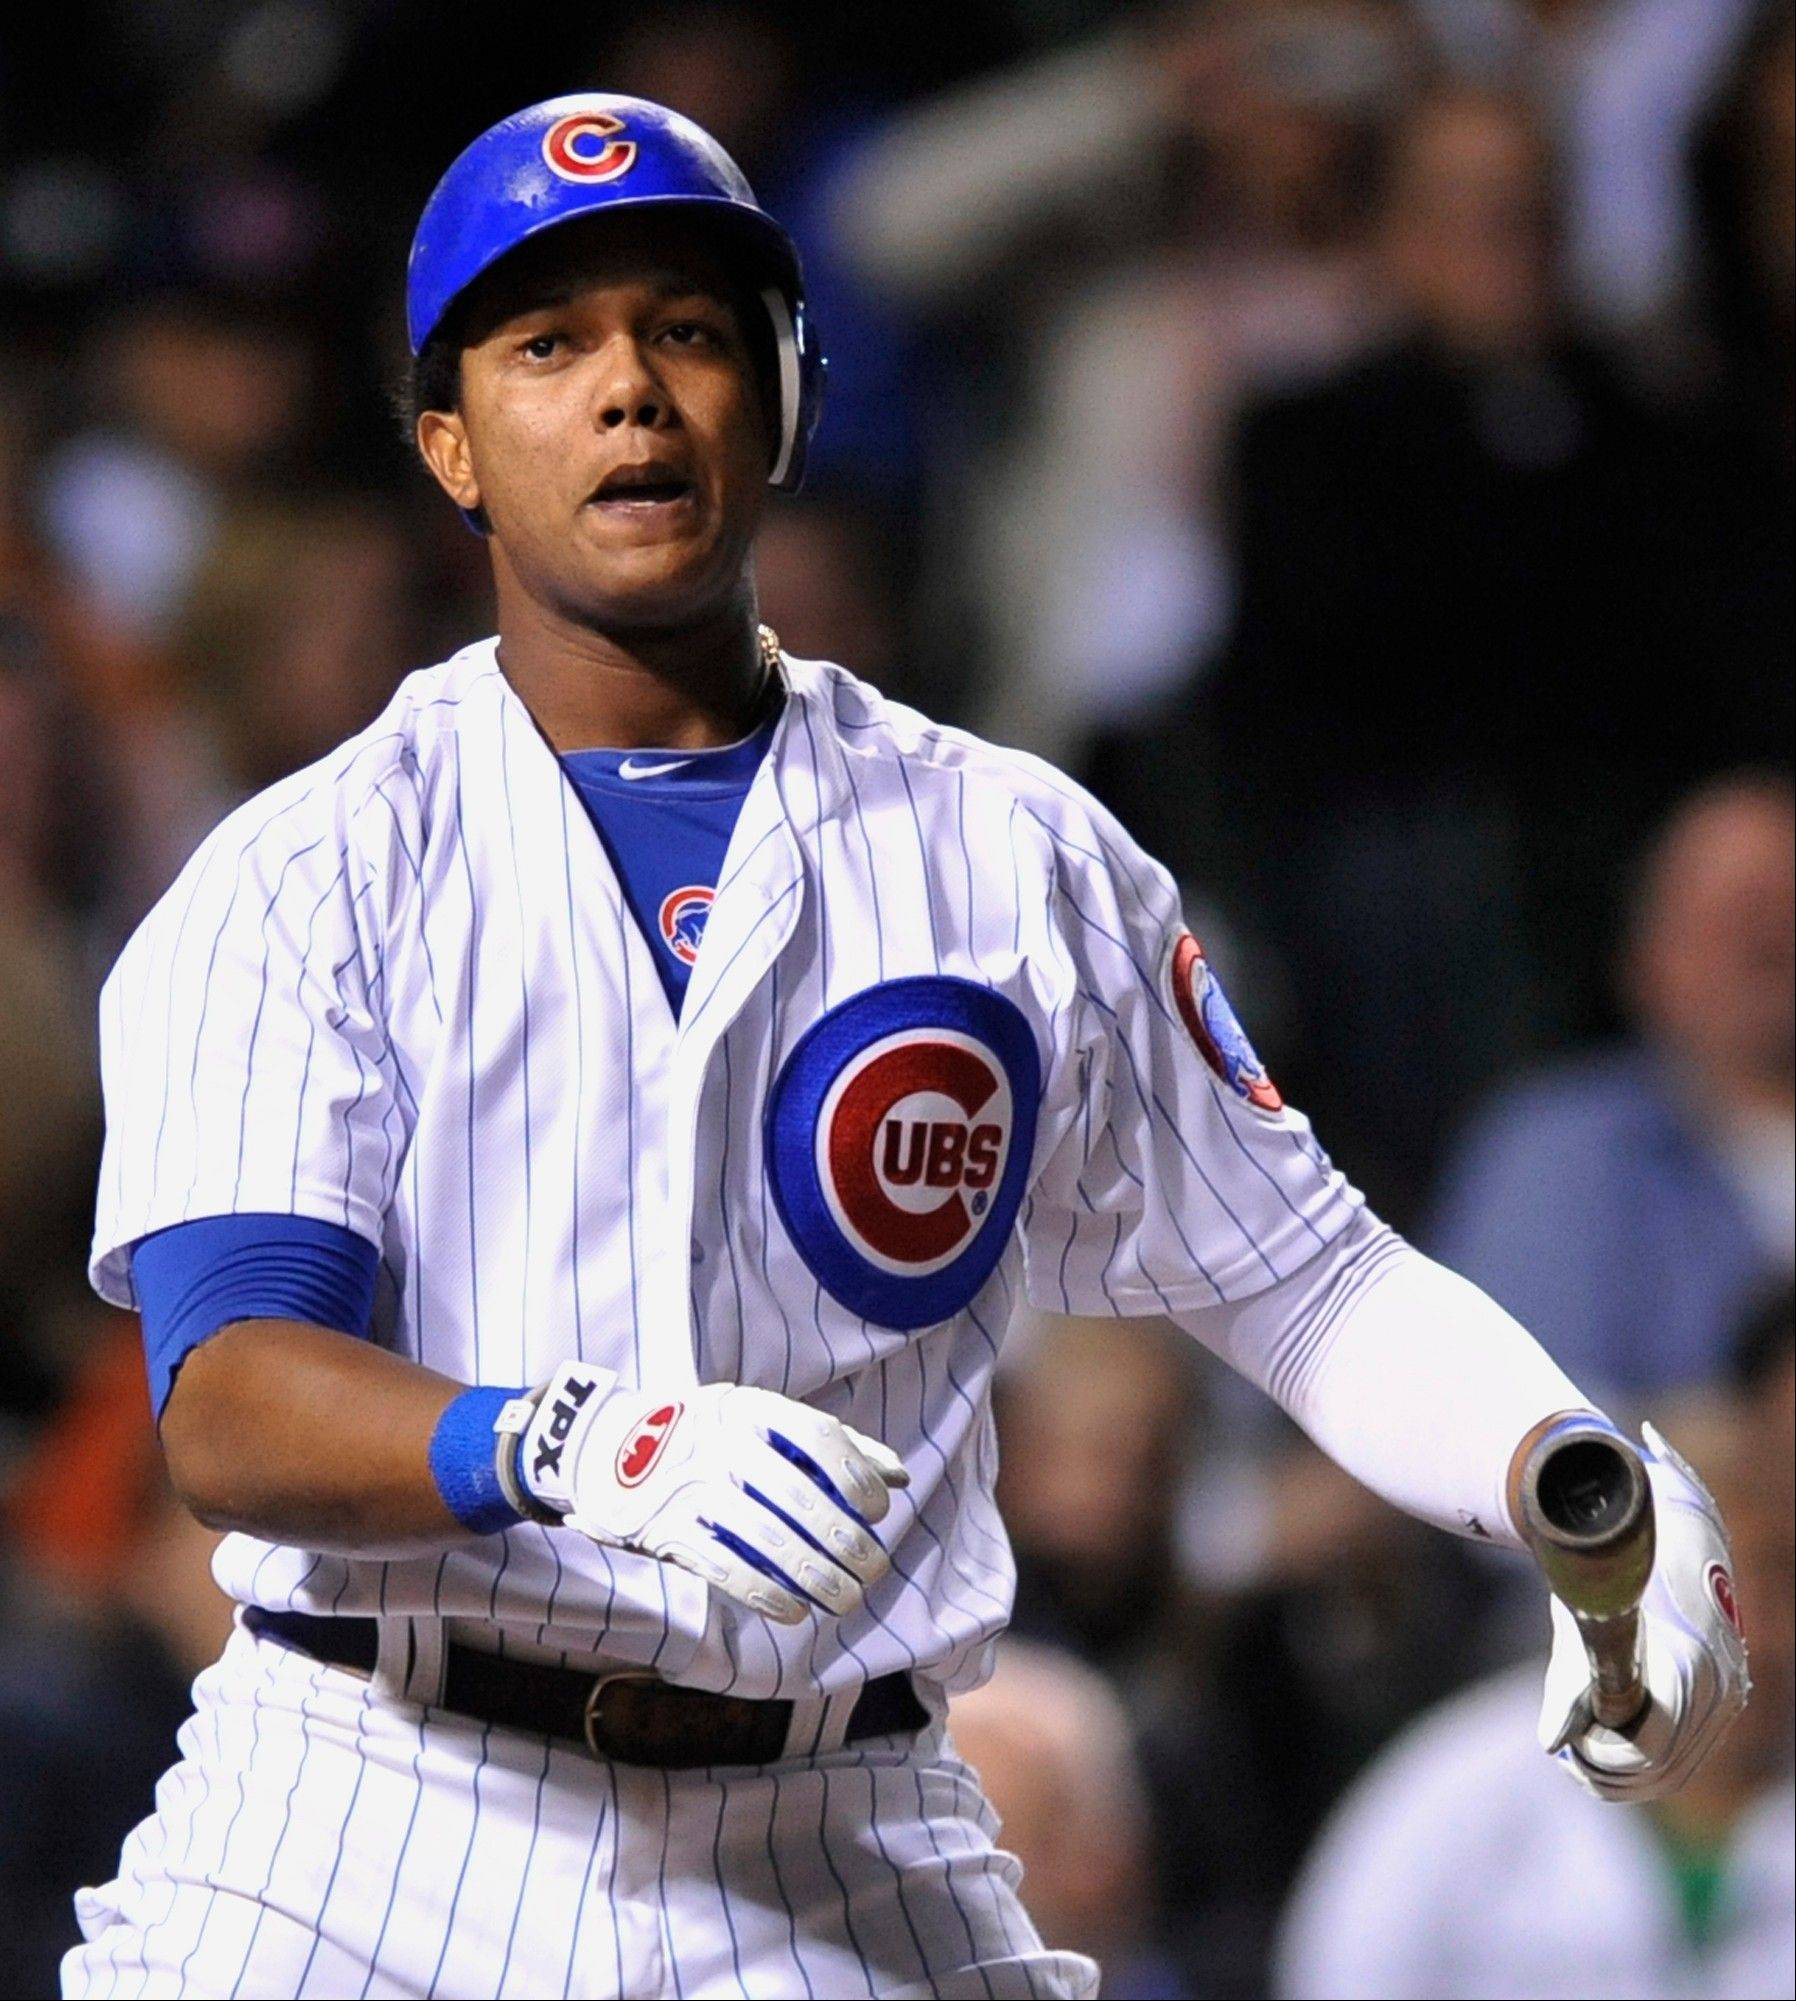 Regarded as the player the Chicago Cubs will build around to get to the World Series, Starlin Castro reacts to striking out during the team's 100th loss of the season.